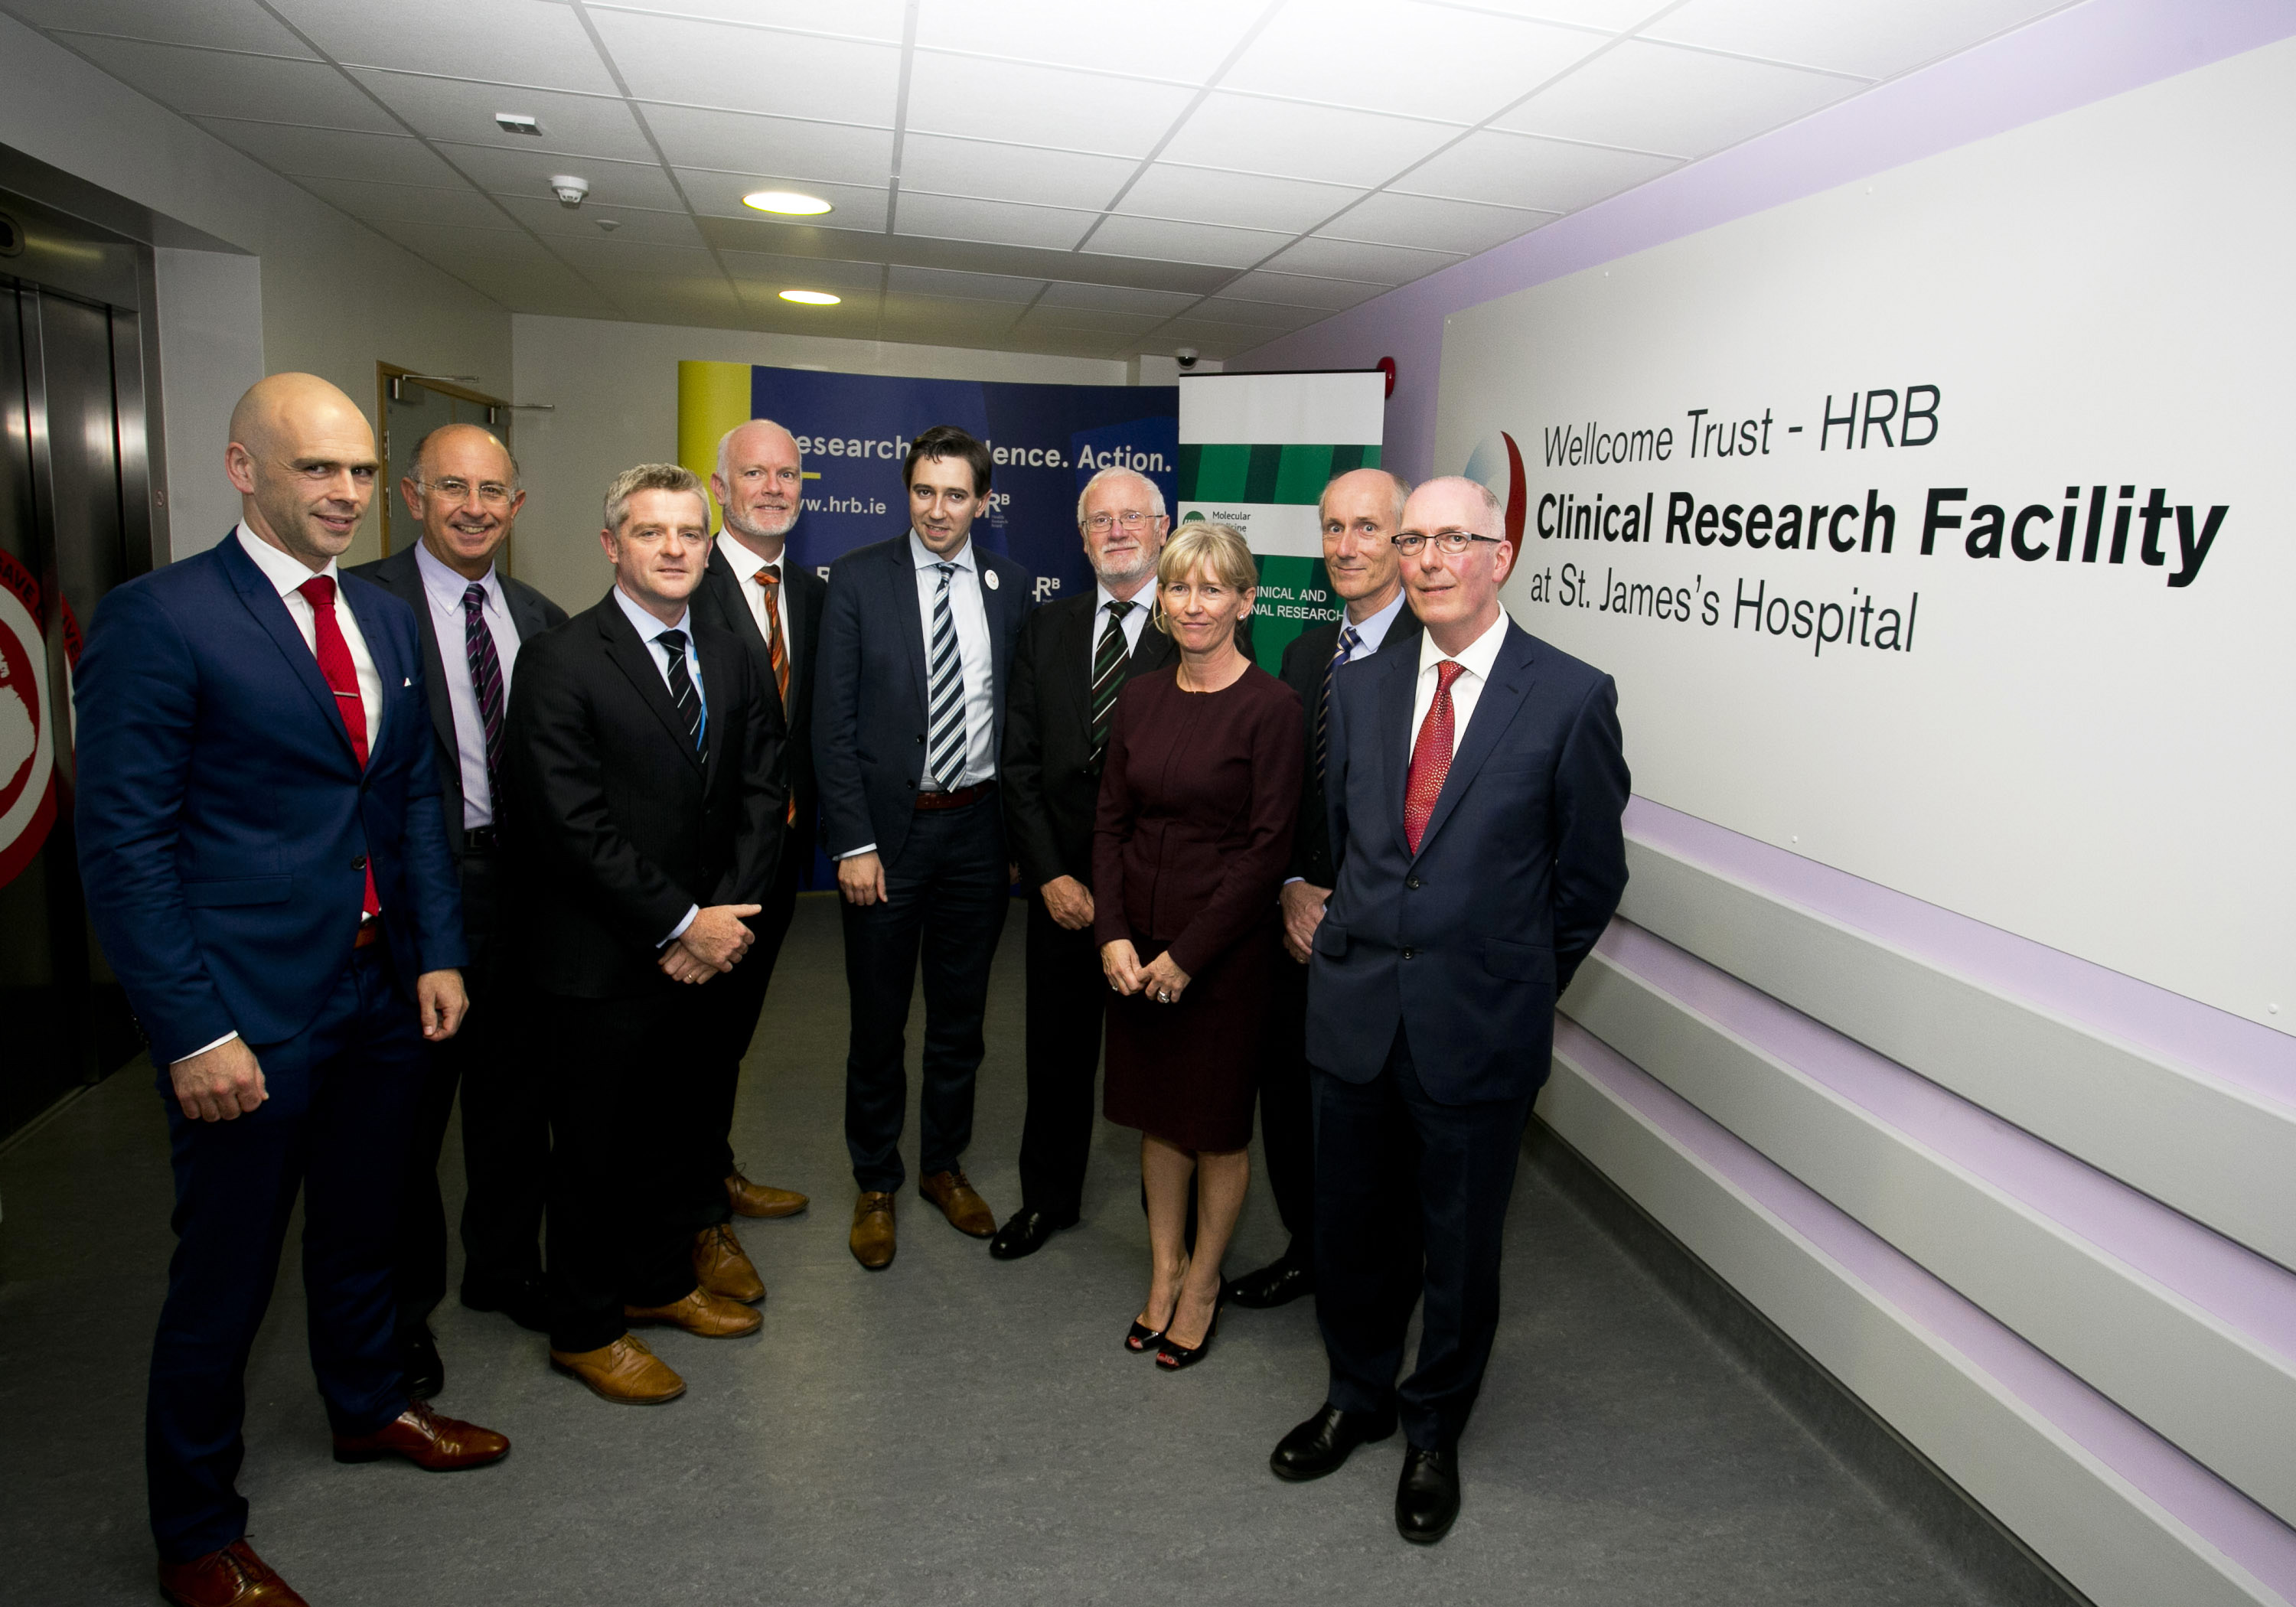 Minister Harris announces a new programme to advance clinical research capability among doctors